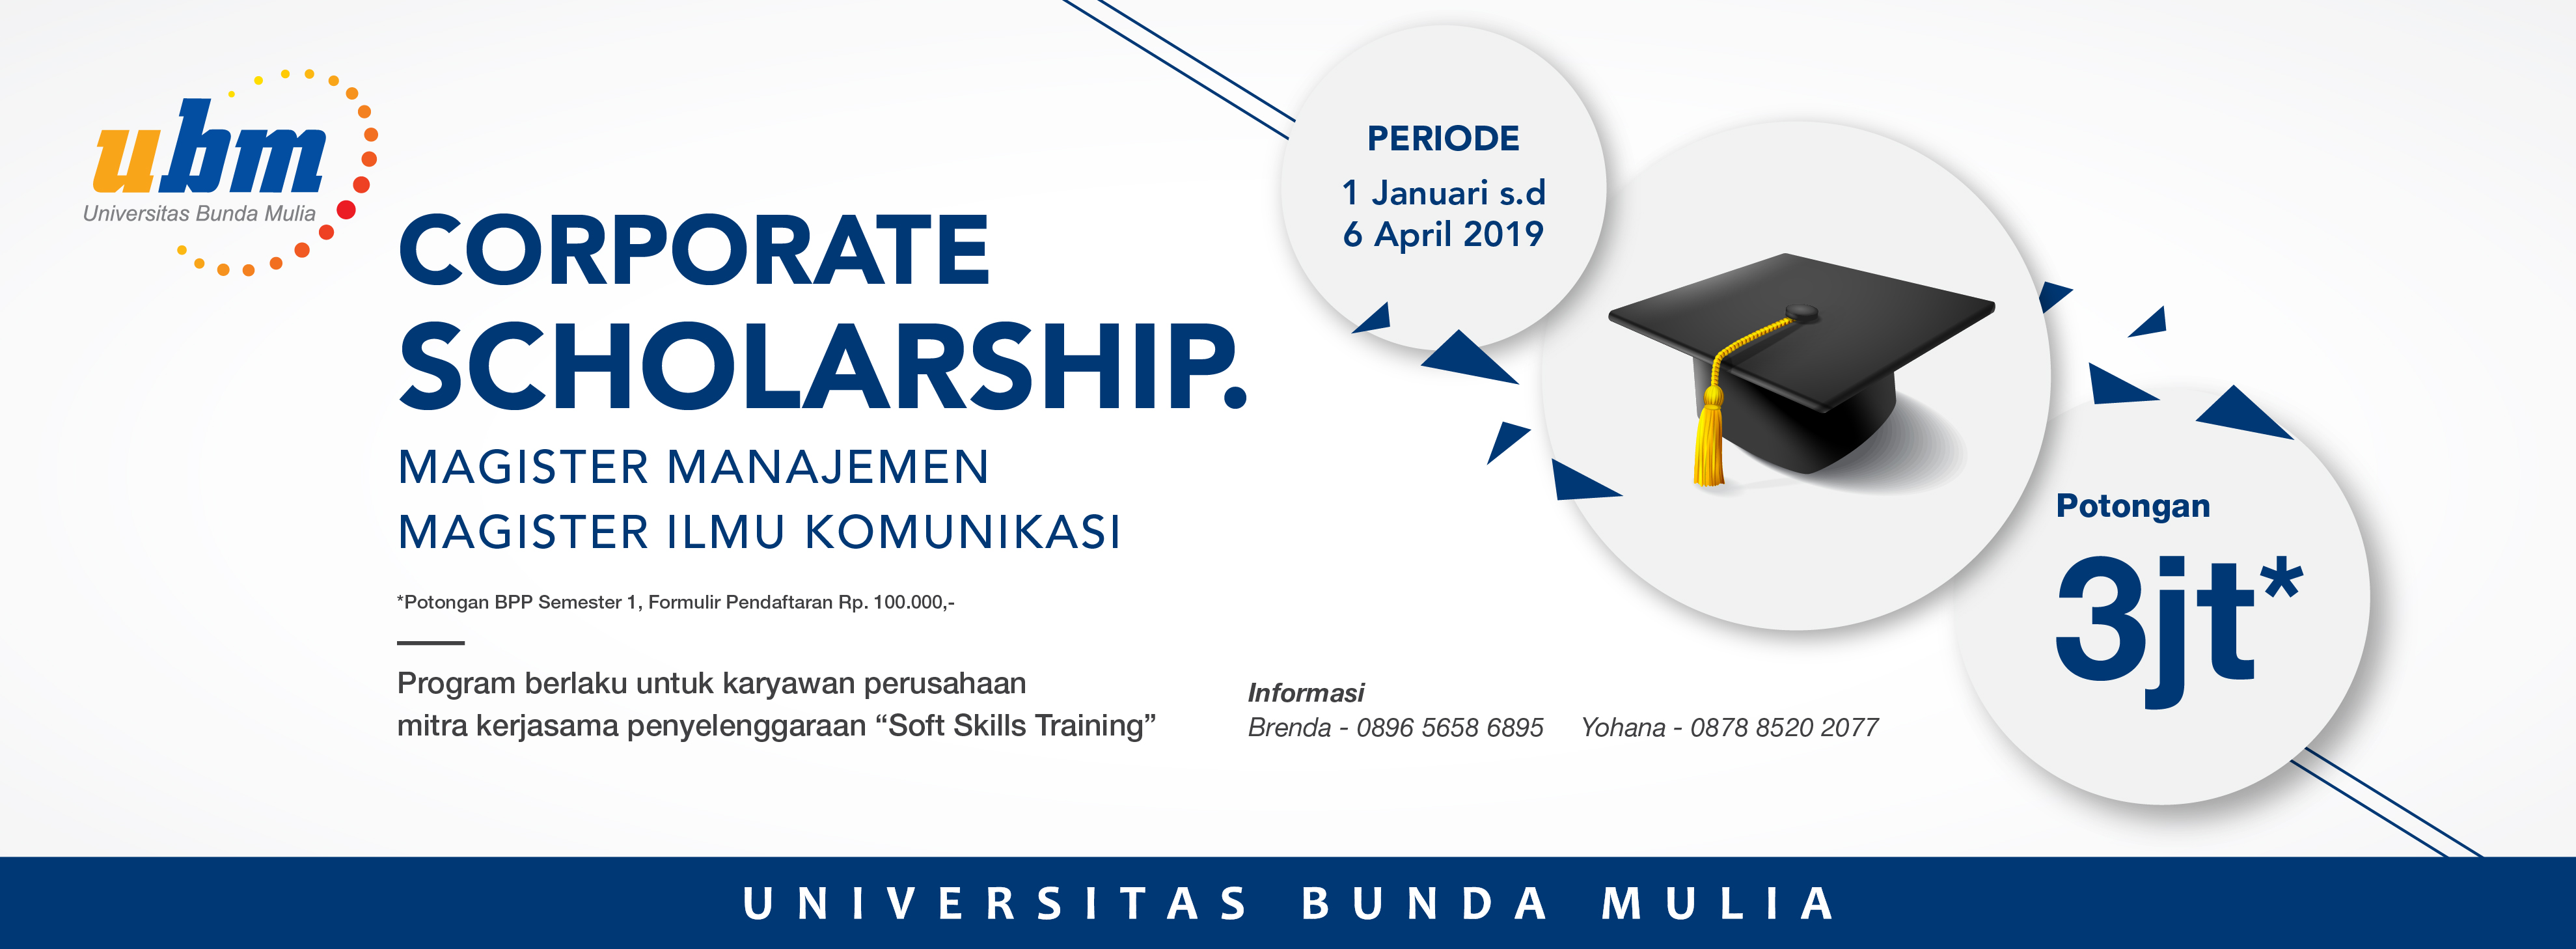 Web-Banner-Corporate-Scholarship-01